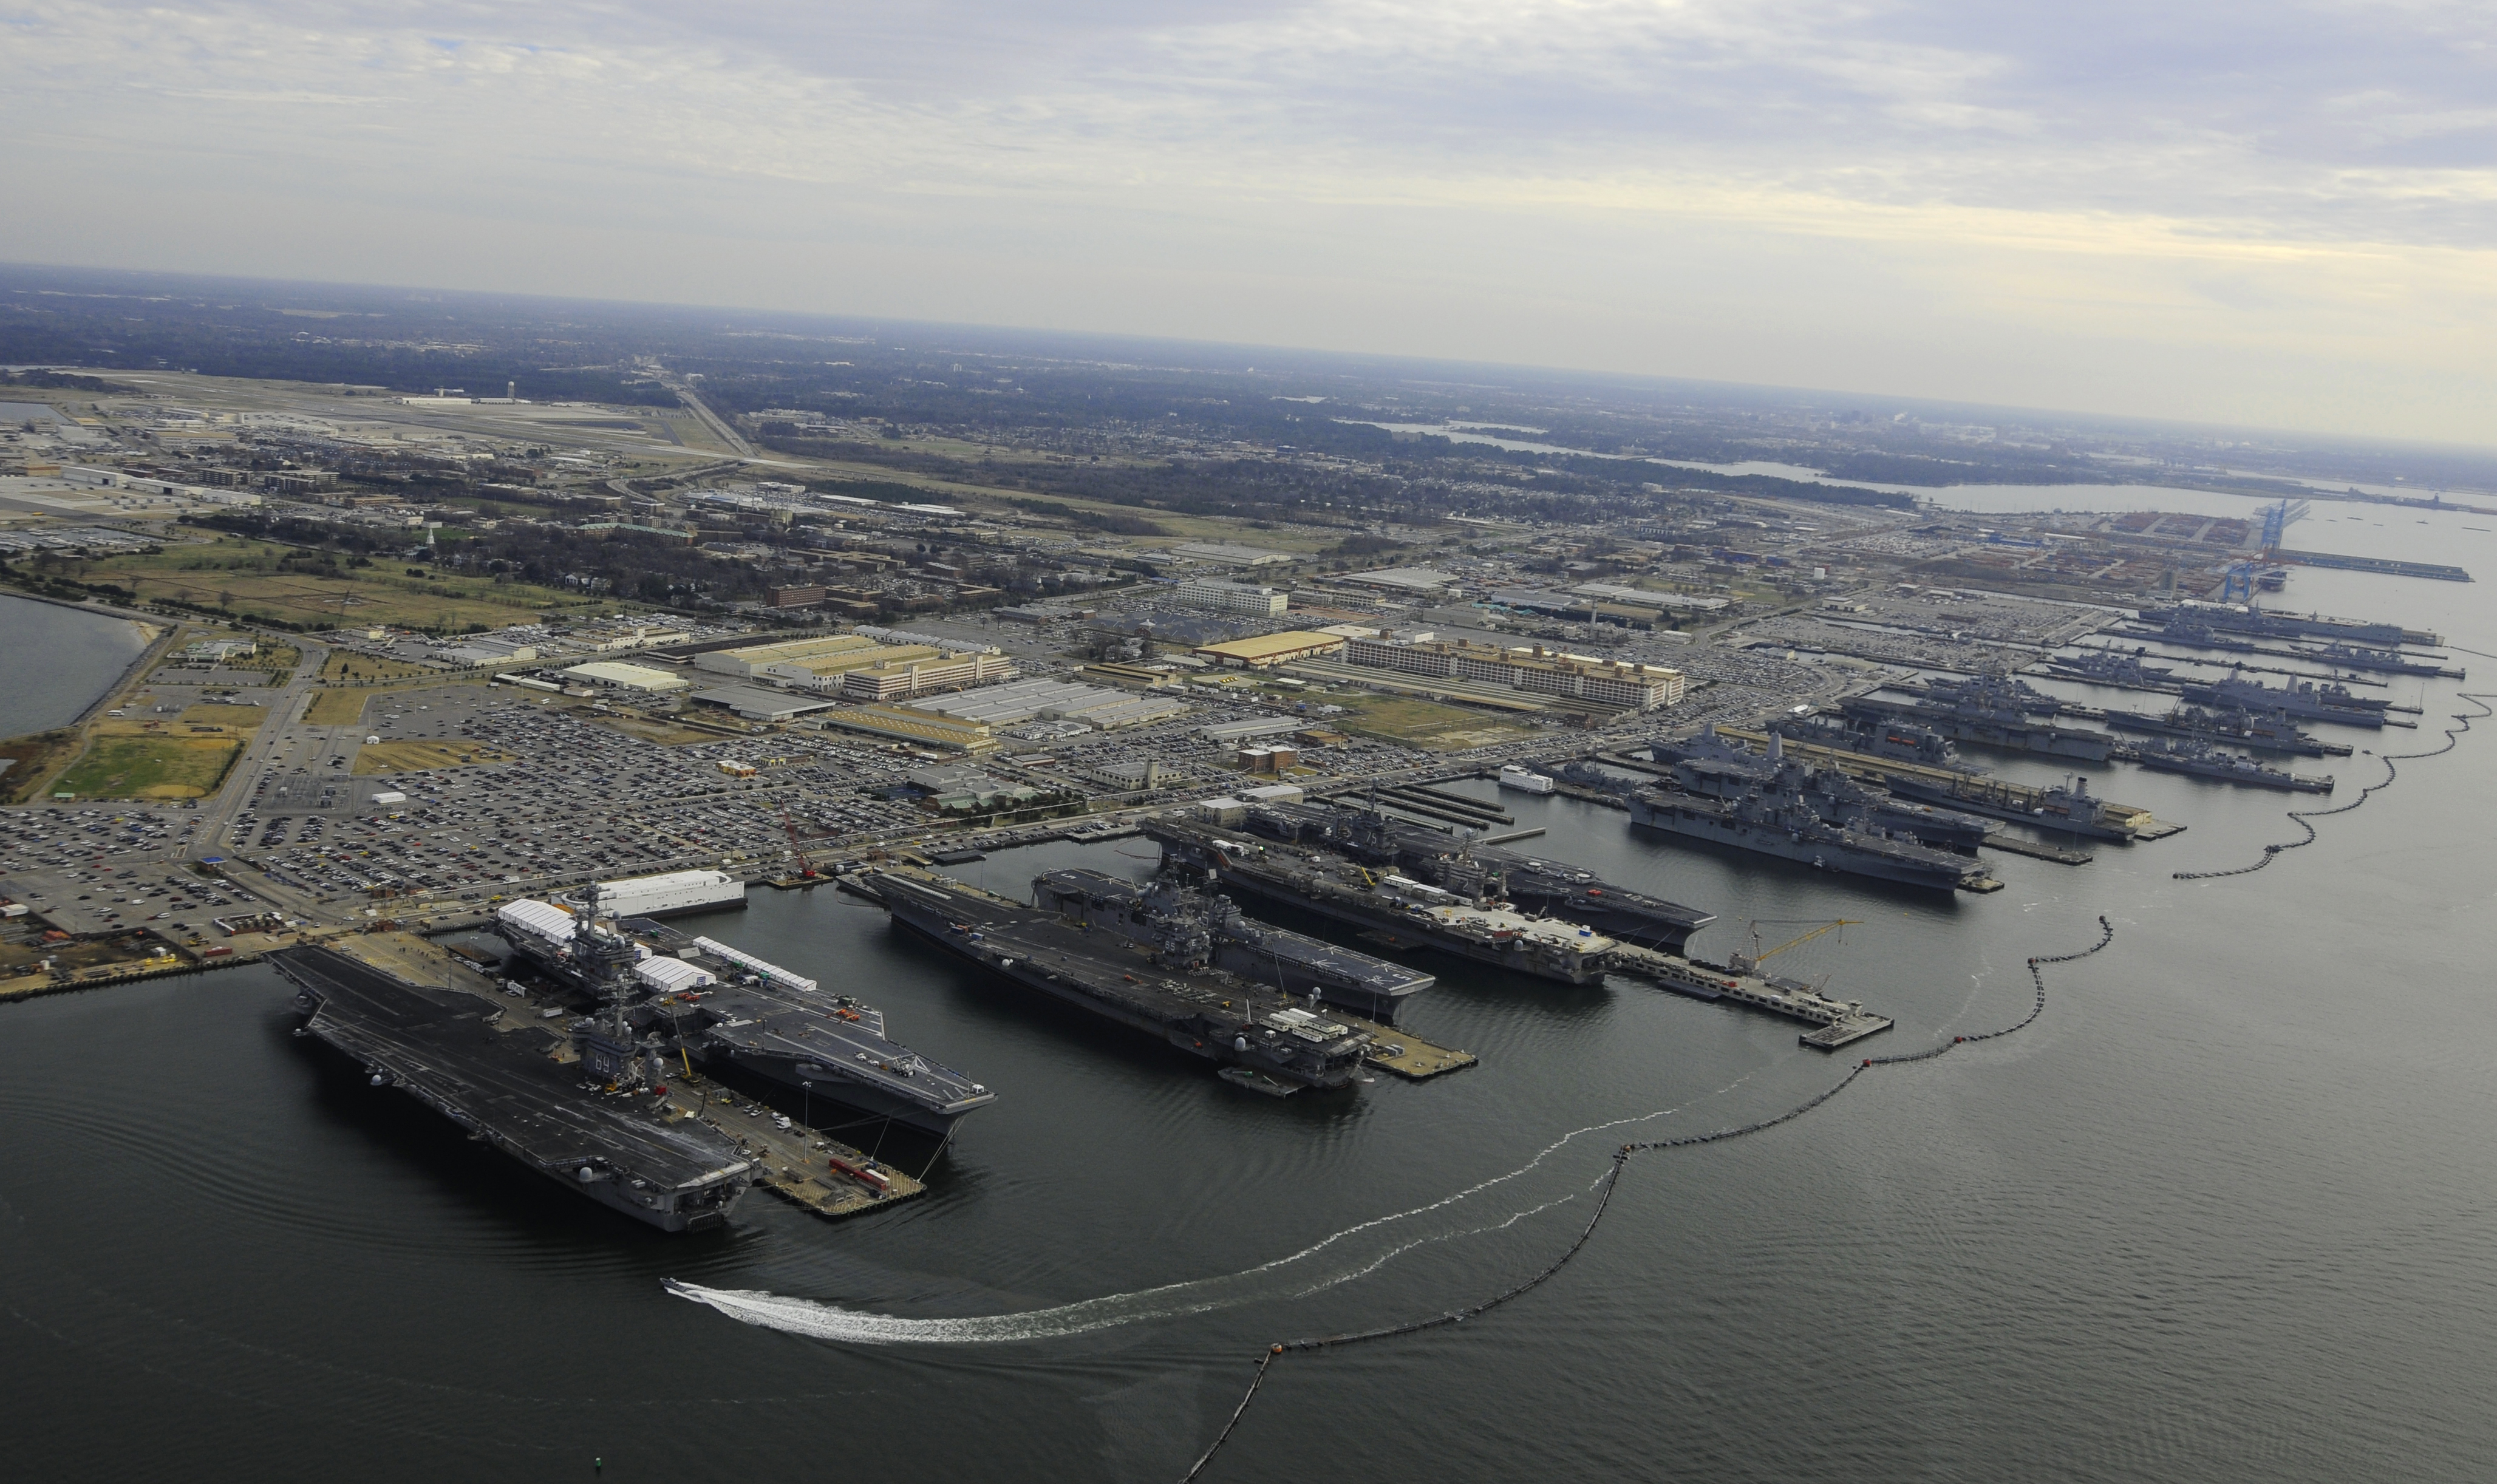 Six amphibious ships and five carriers moored in Norfolk.